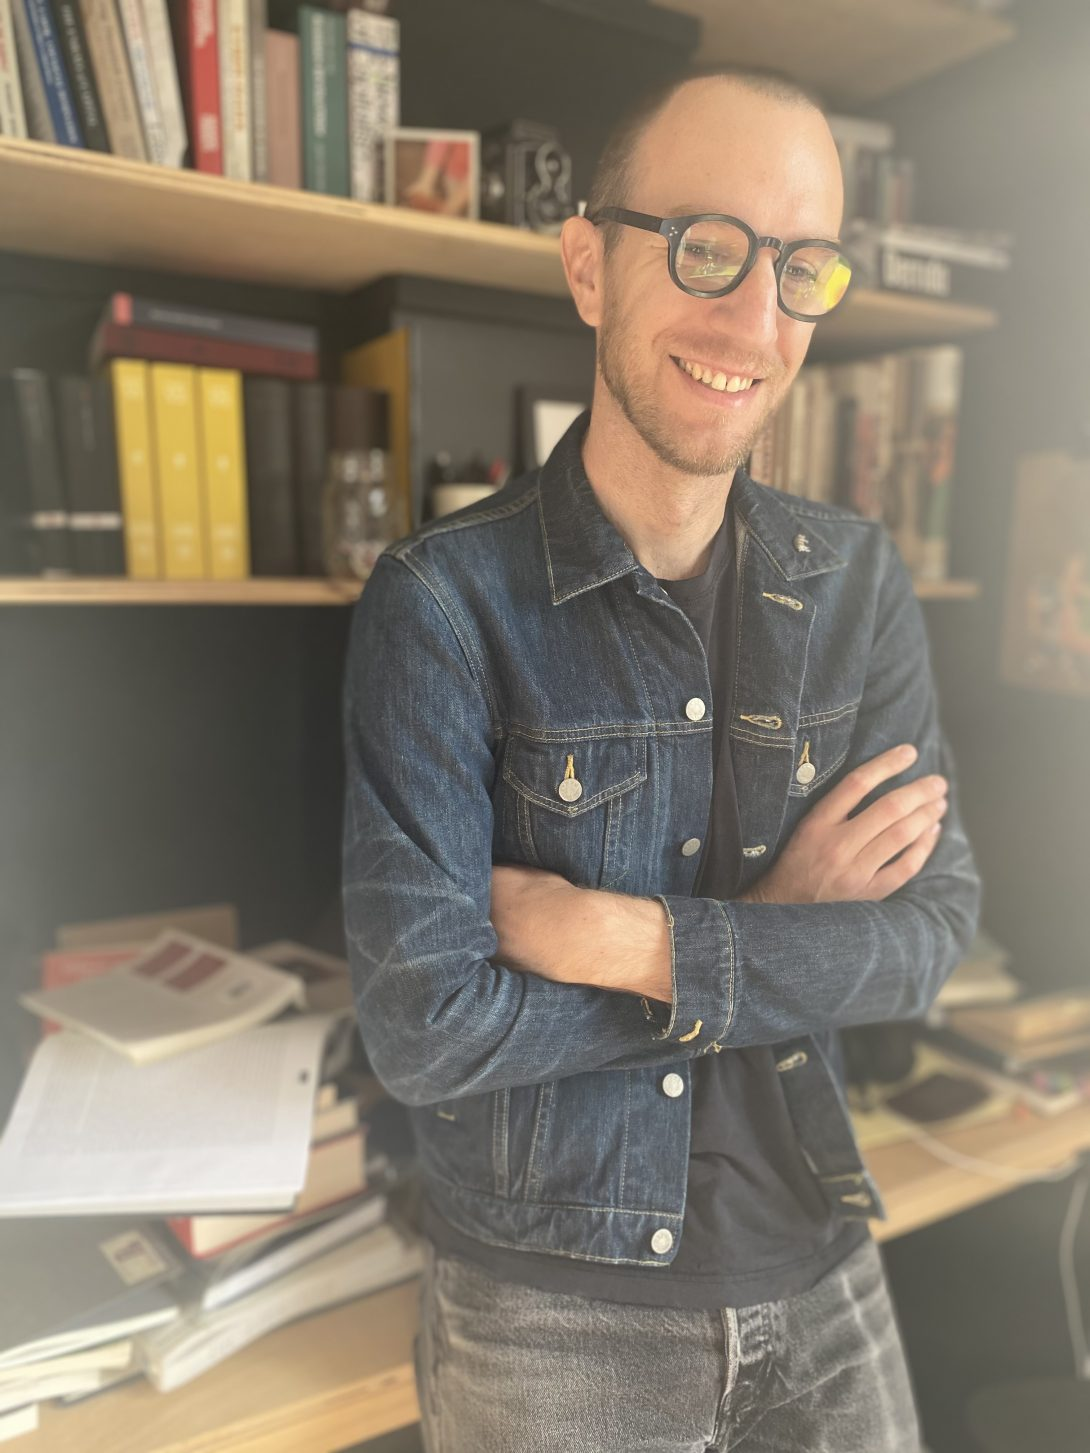 A person standing in front of bookshelf smiling